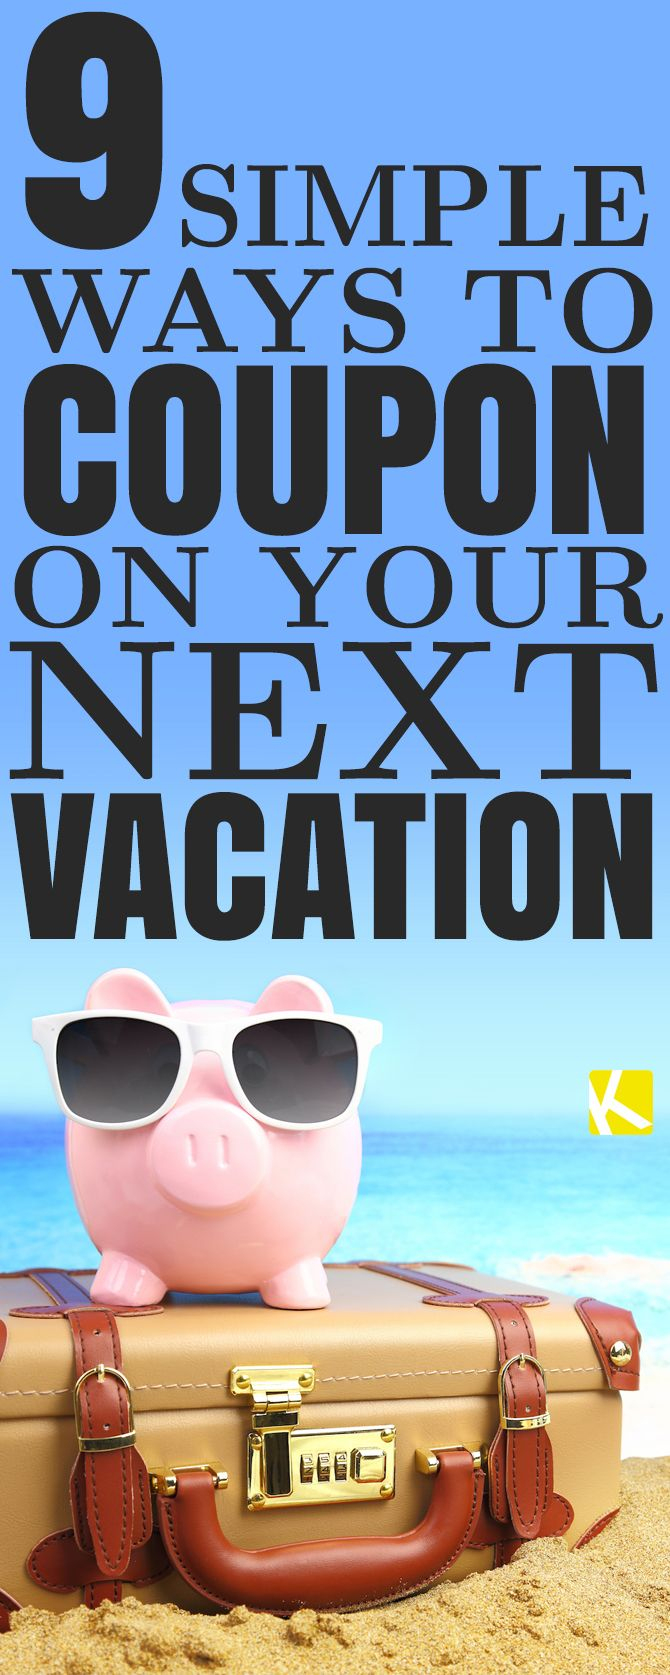 9 Simple Ways To Coupon On Your Next Vacation | Pinterest | Vacation - Free Printable Coupons For Panama City Beach Florida